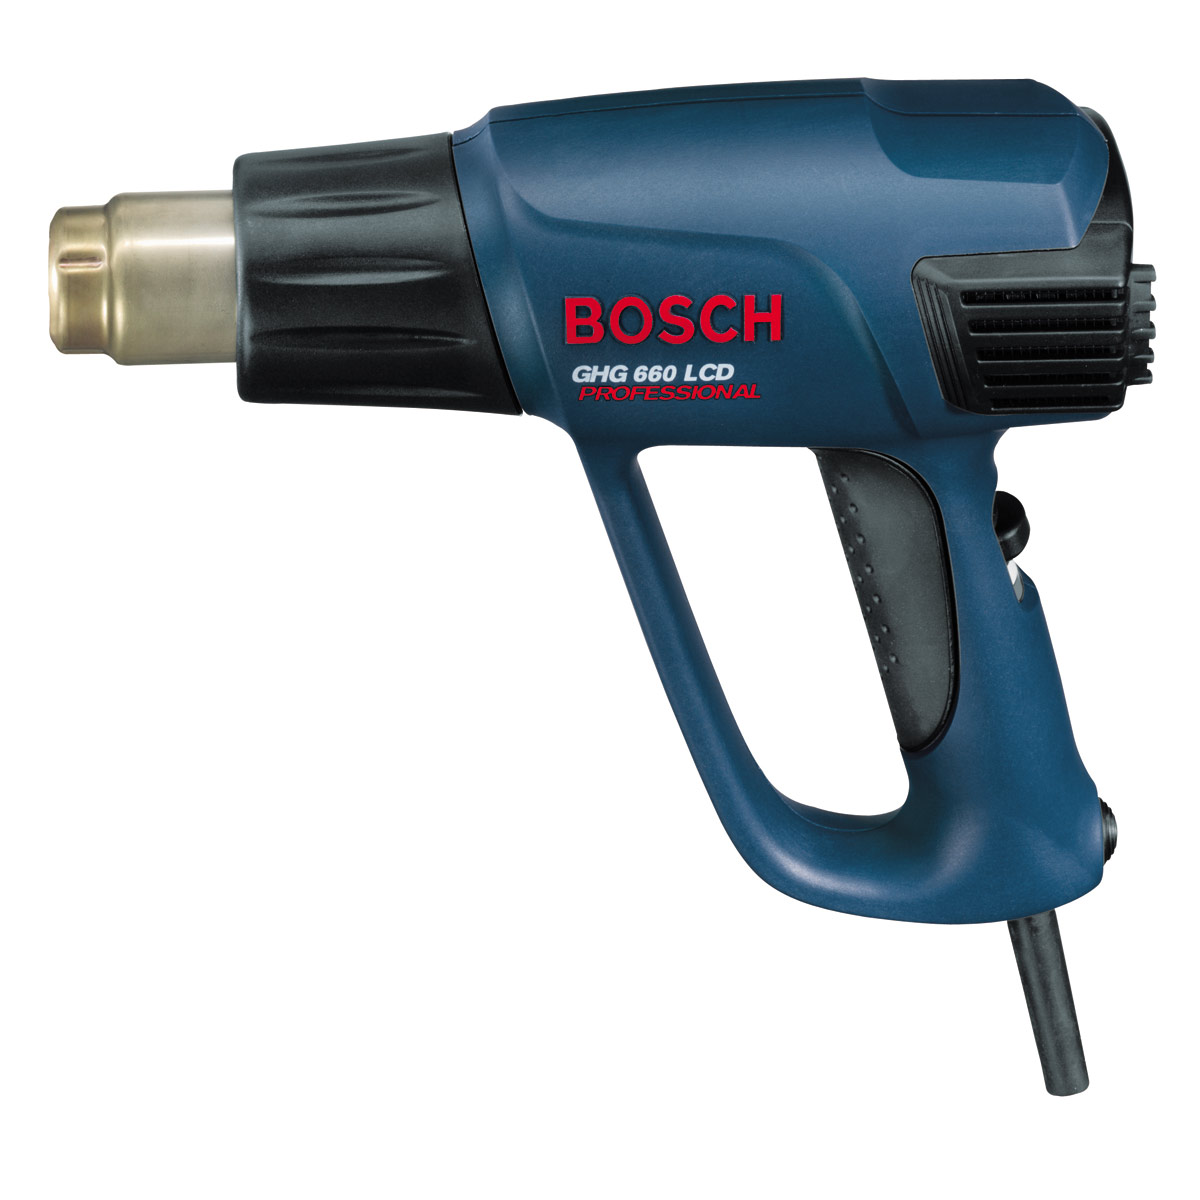 00011767 bosch hot air gun ghg 660 lcd. Black Bedroom Furniture Sets. Home Design Ideas